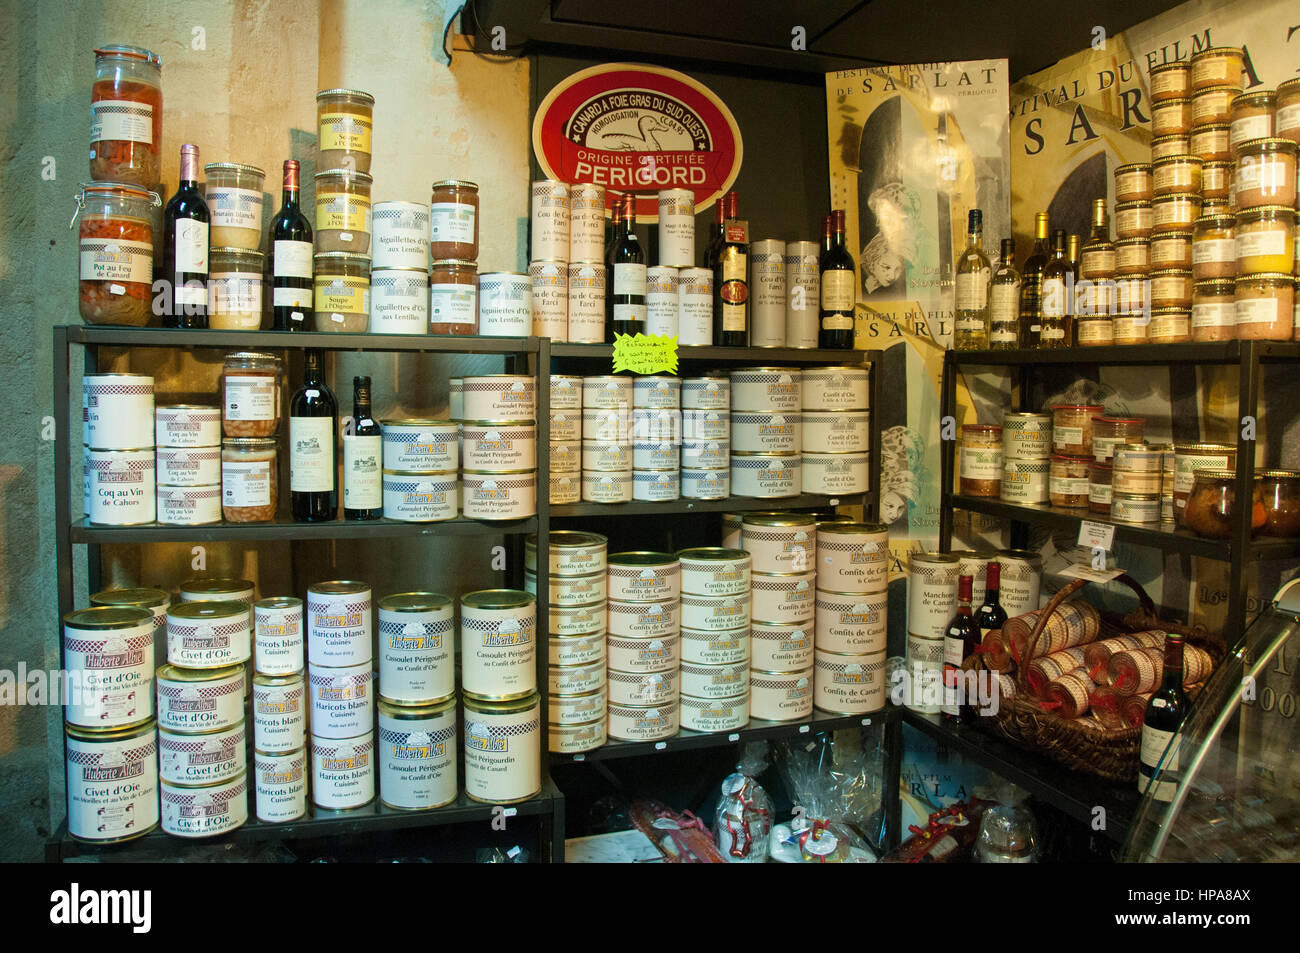 Tins of duck confit in a shop in Sarlat, Dordogne, France - Stock Image